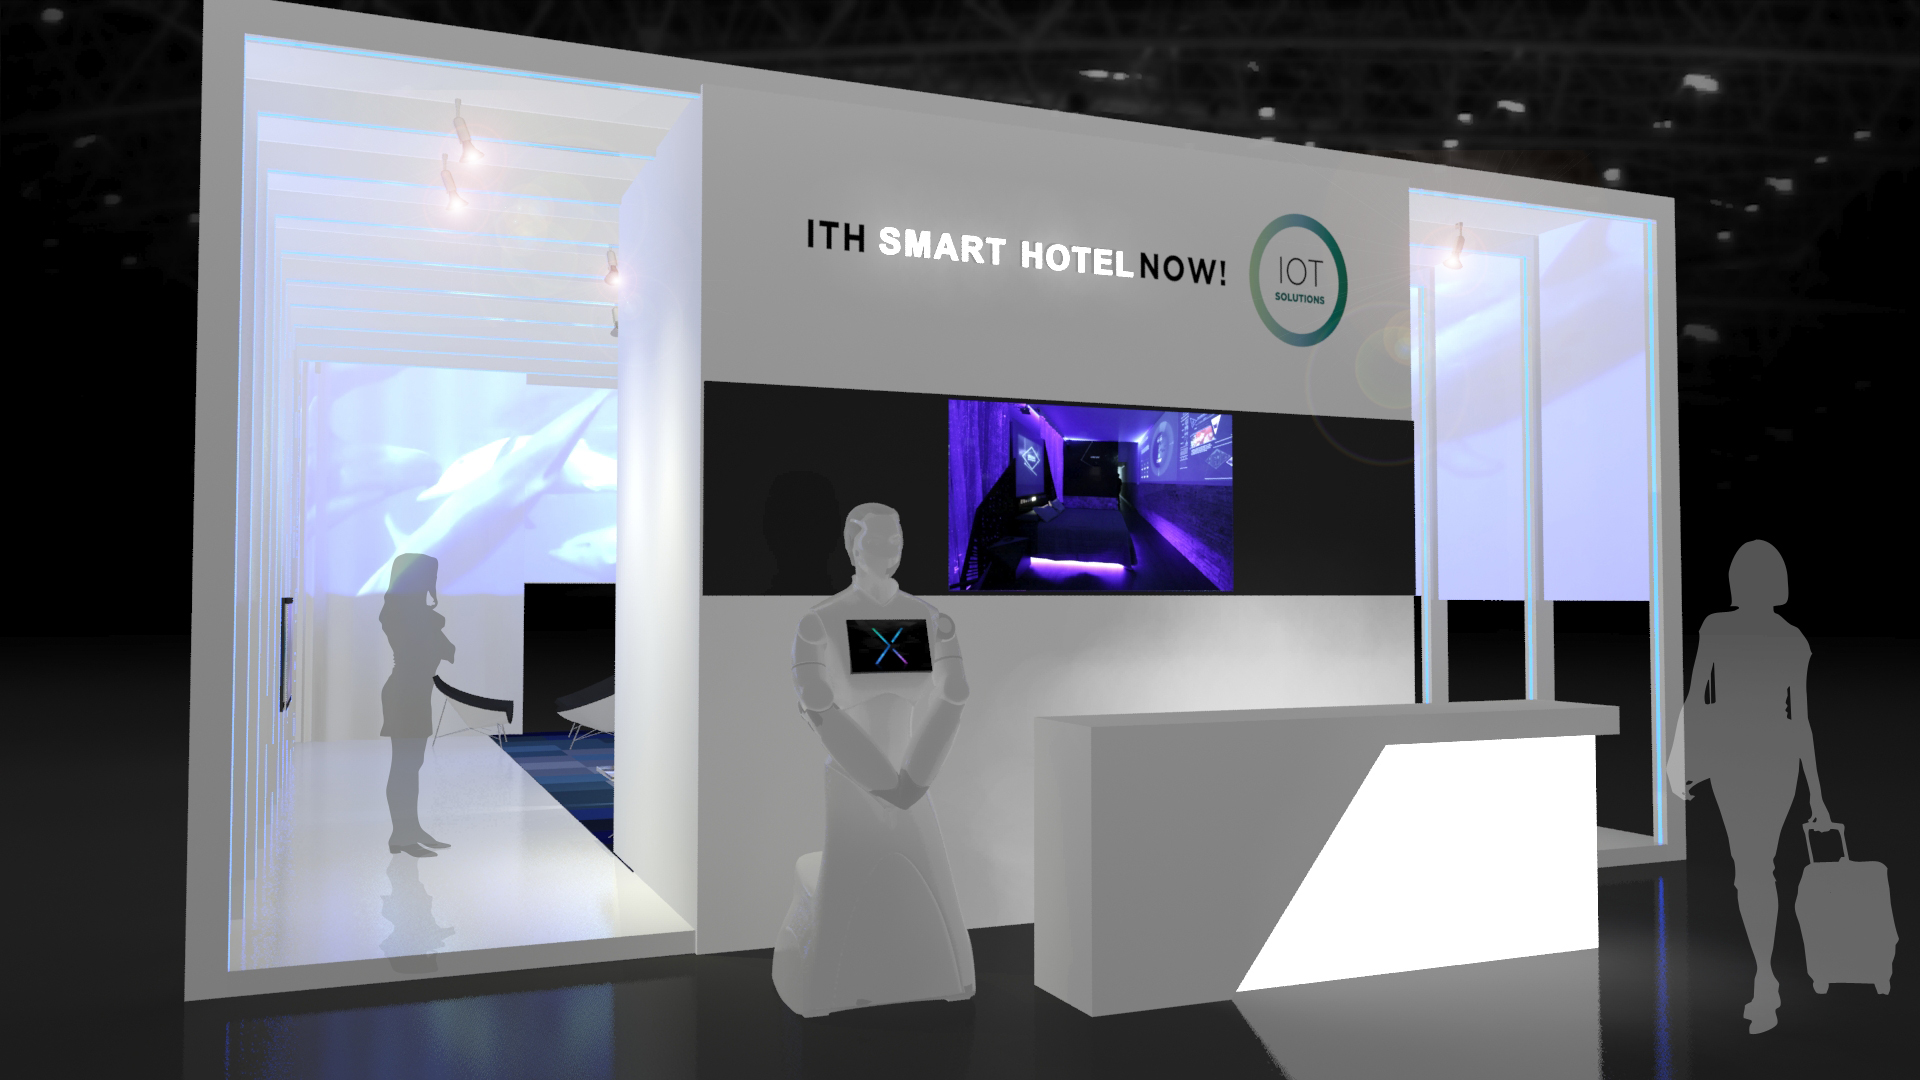 ITH Smart Hotel Now!